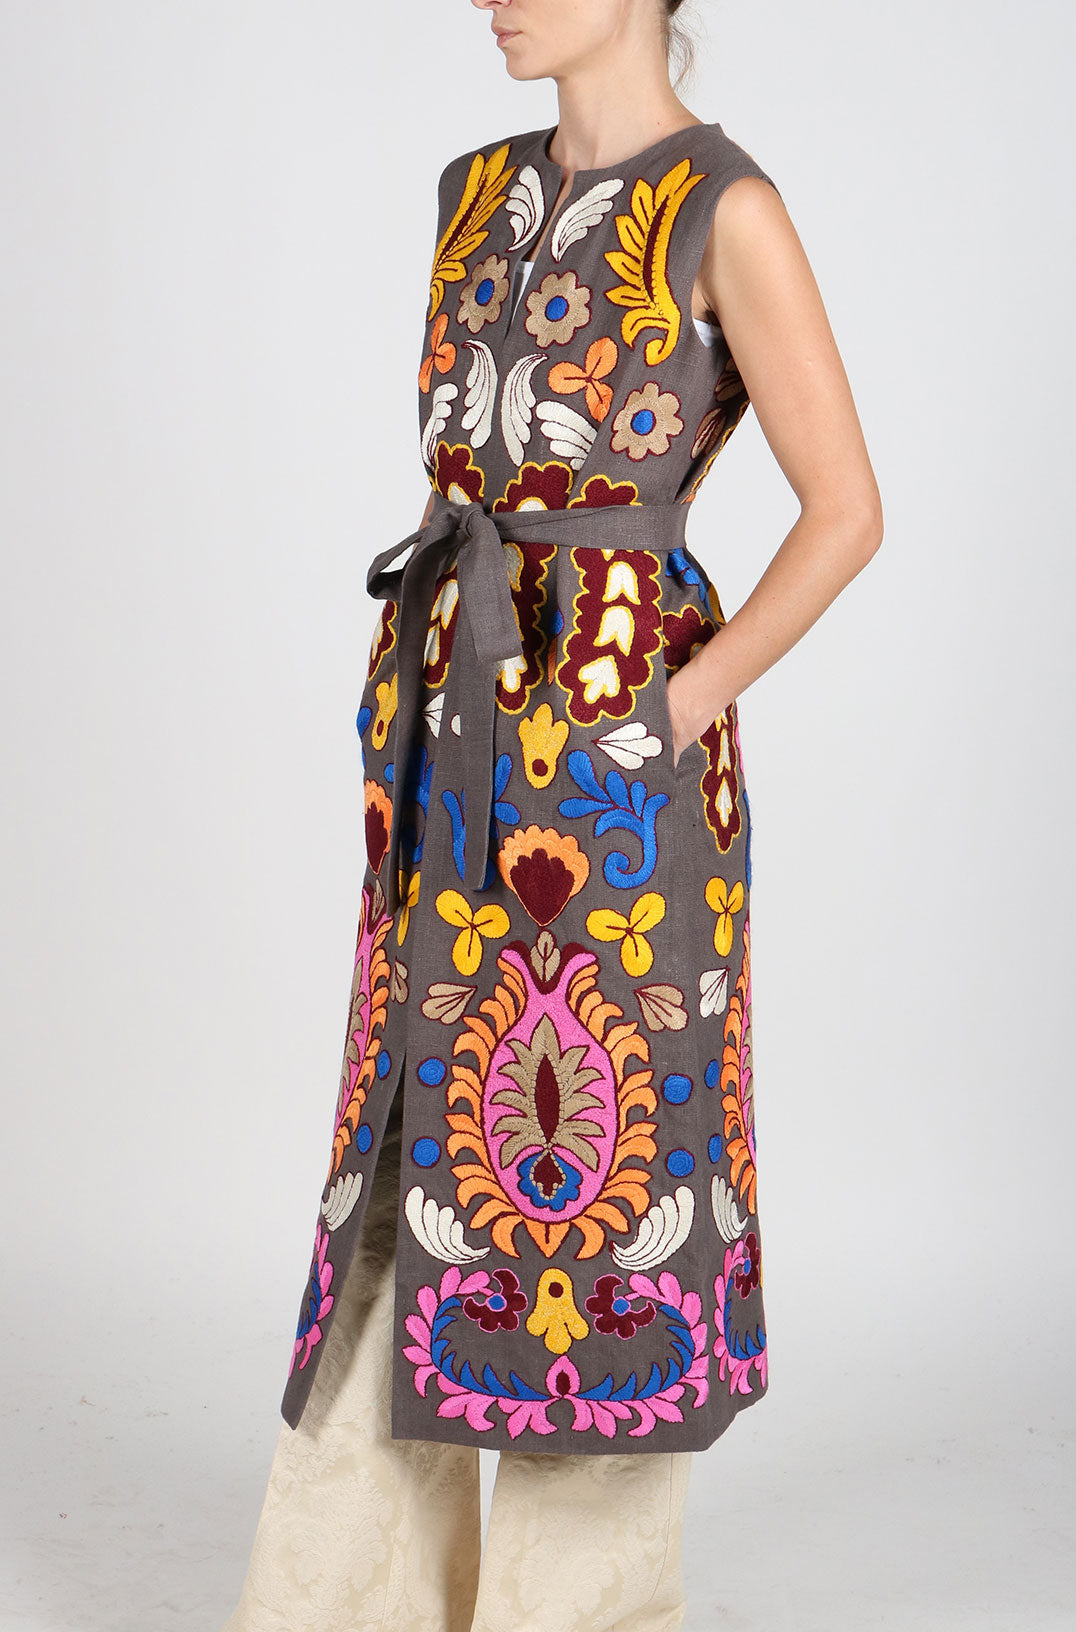 Fanm Mon Vyshyvanka MAROK Linen VEST HAND Embroidered MULTI COLOR Floral Vest IN STOCK